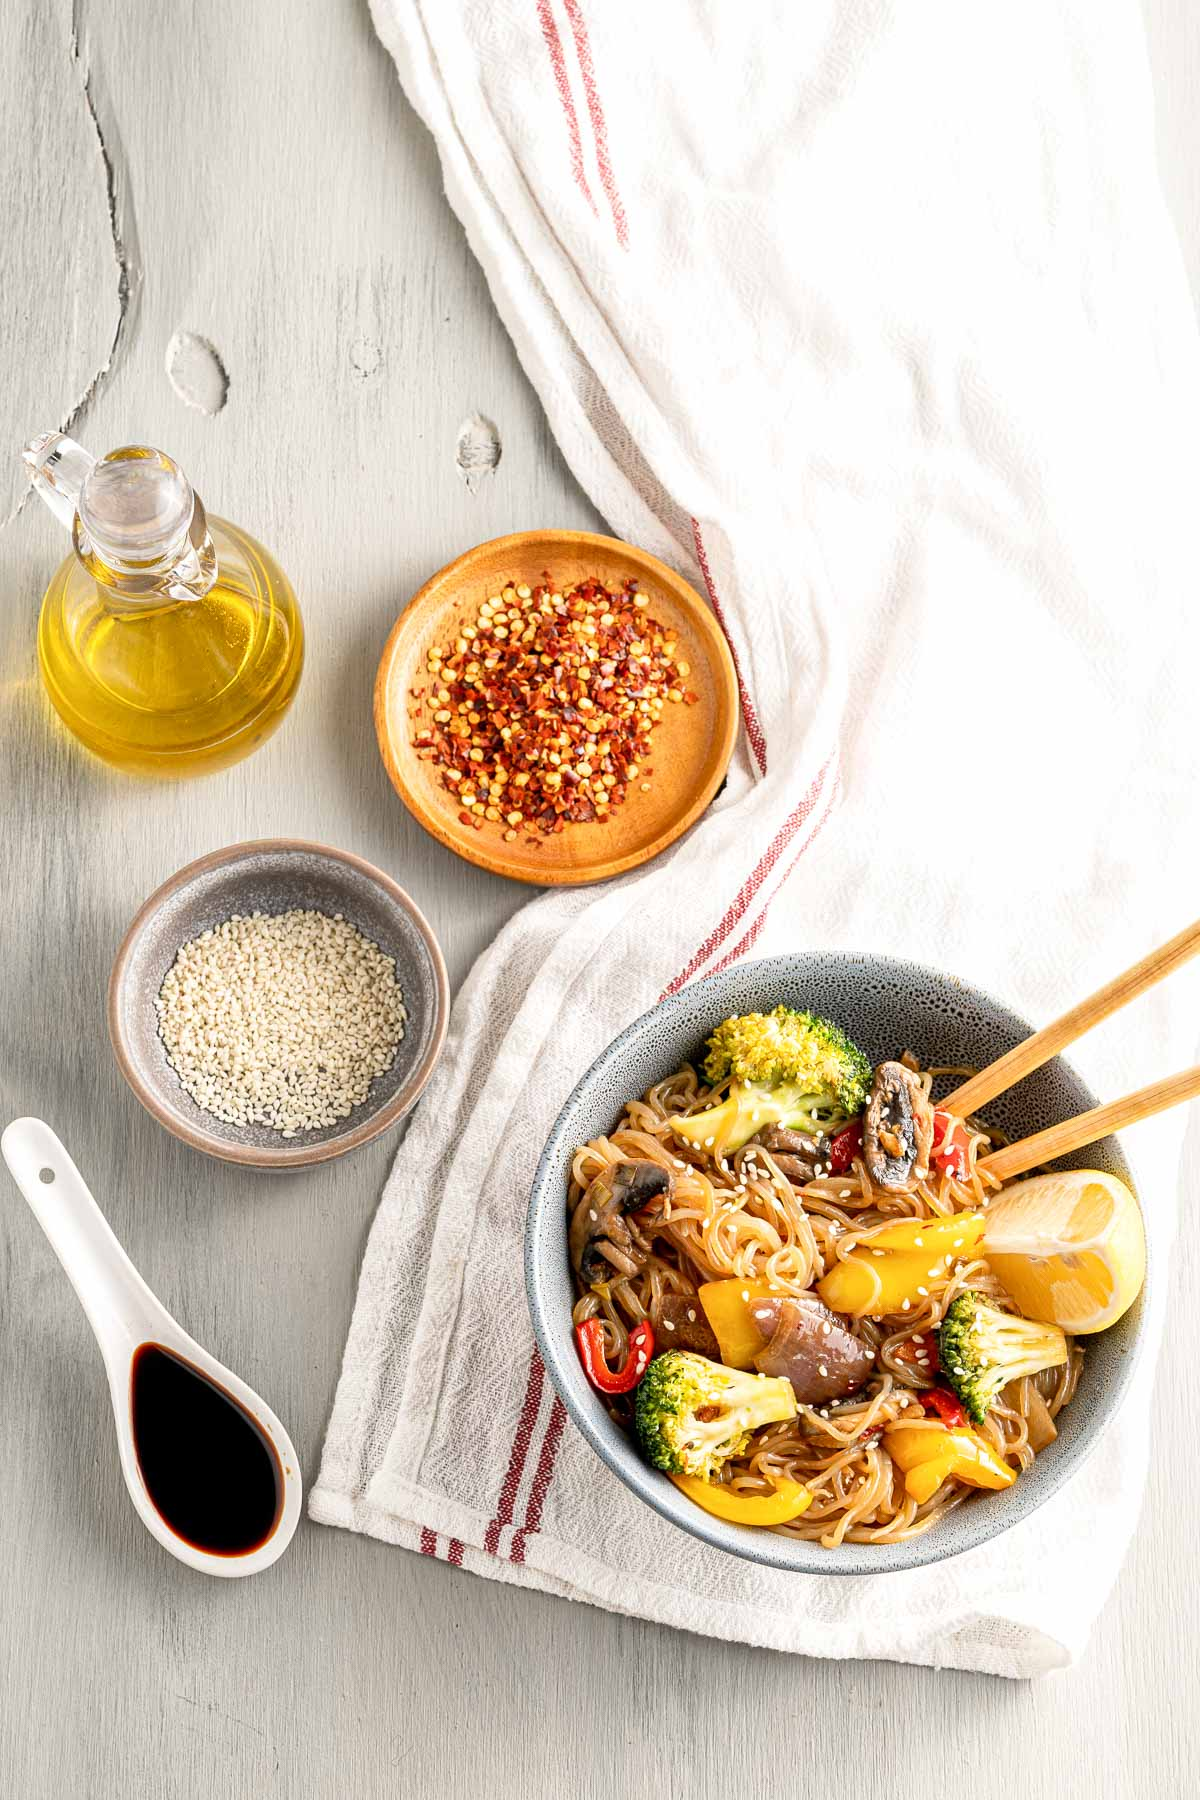 bowl of stir fry with ingredients on a table with a tablecloth, oil, noodles, and soy sauce